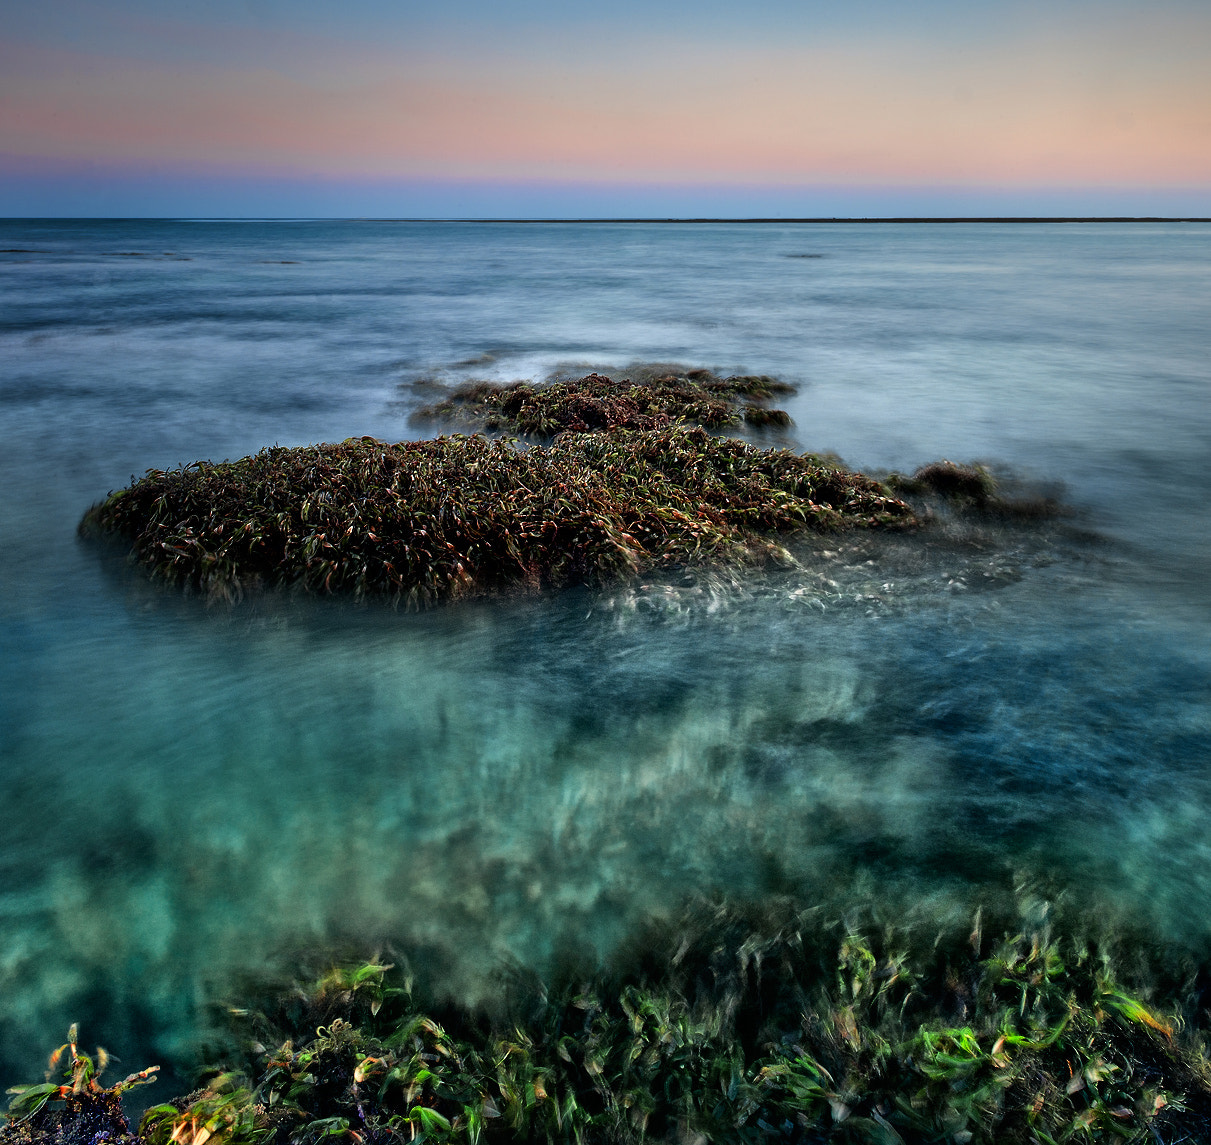 Photograph Nusa Dua by lim theam hoe on 500px